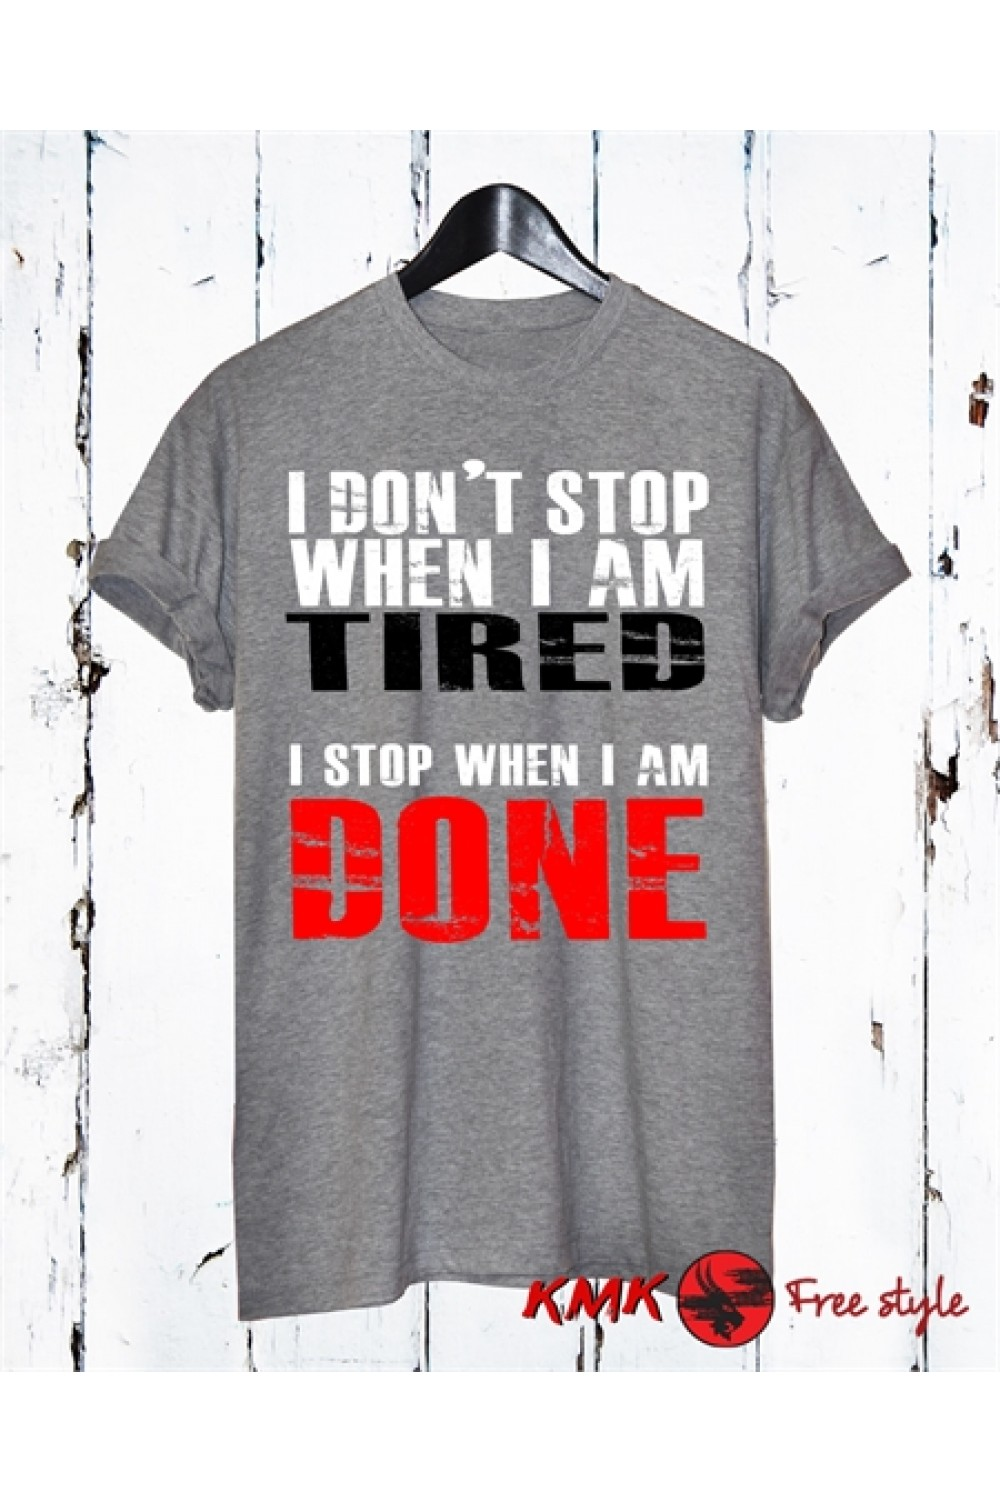 I don't stop when i am tired Printed T shirt | Sport Tee | Fitness T-shirt | Short Sleeves Shirt